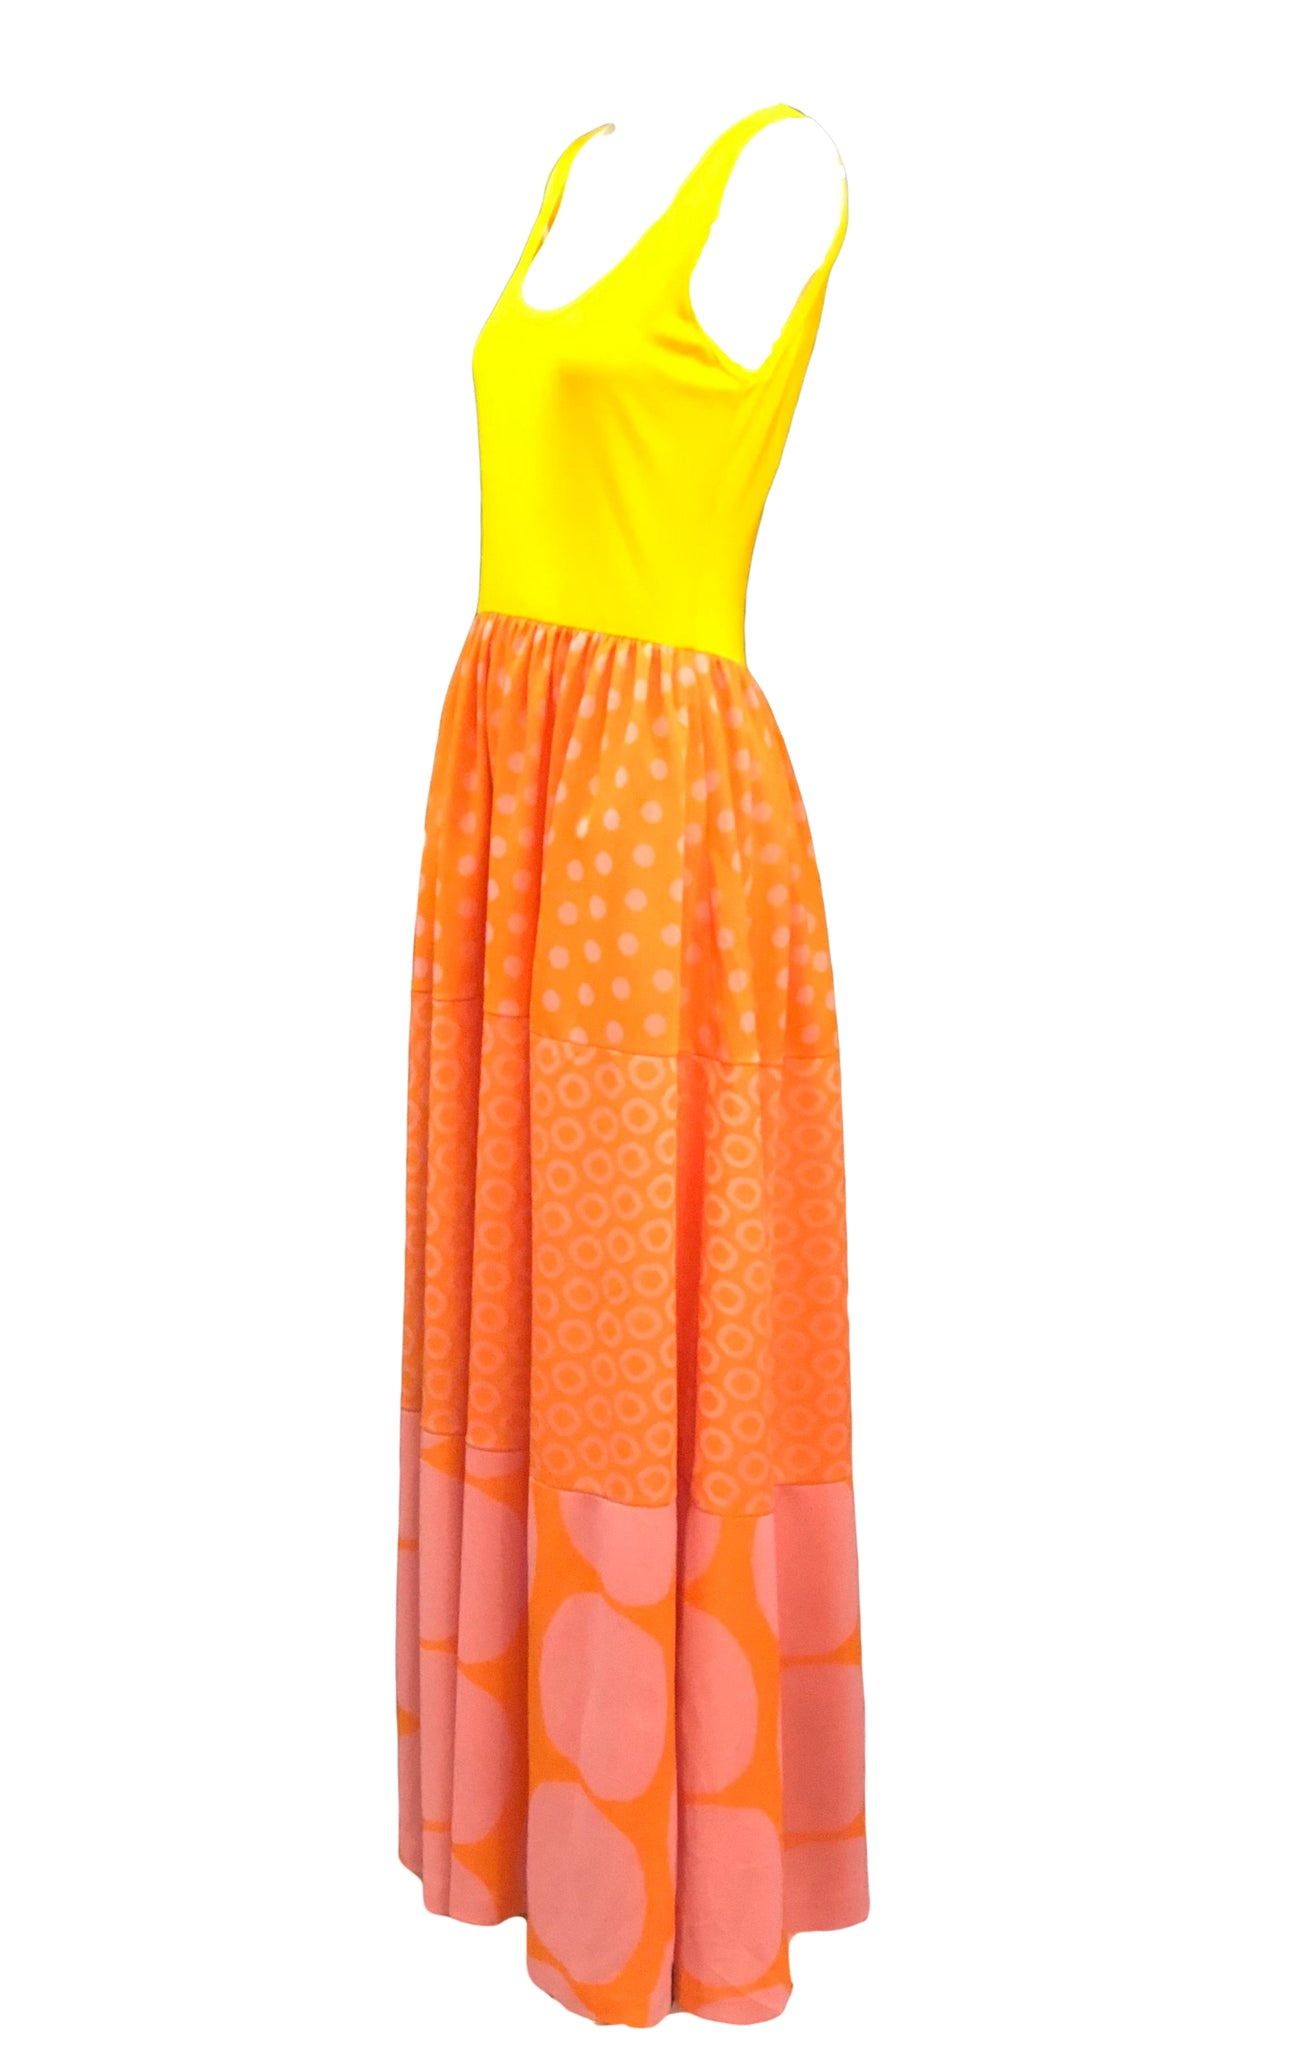 Rudi Gernreich 60s Yellow Polka Dot Maxi Dress